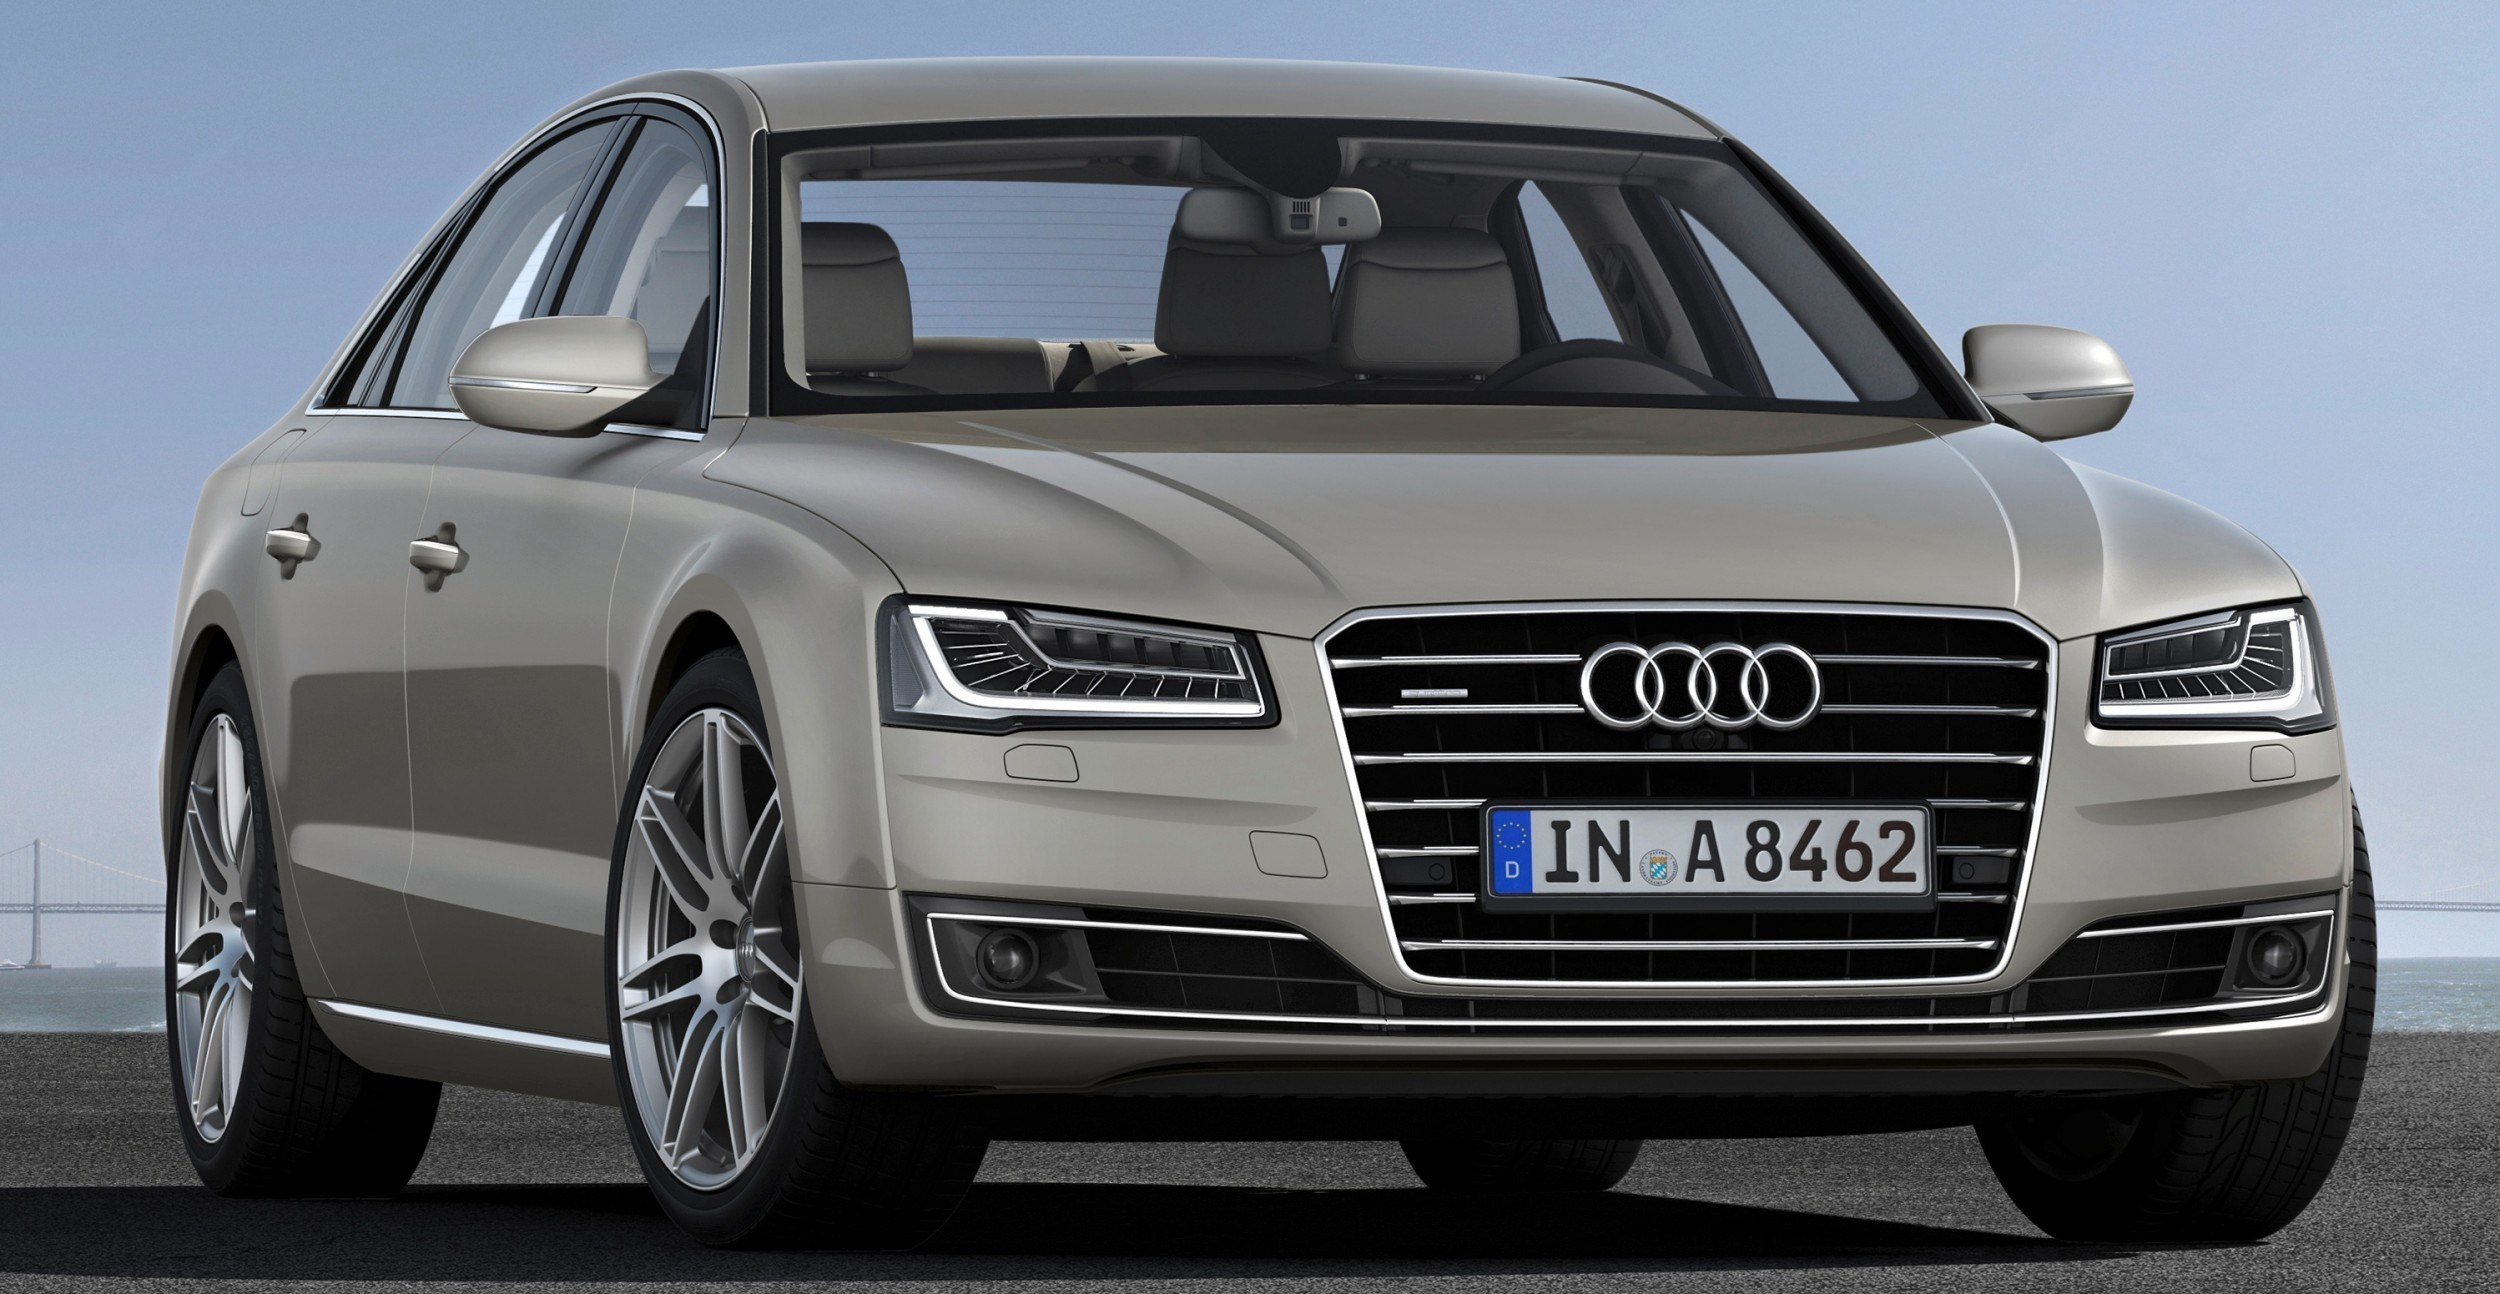 2015 audi a8 limps in with same old man design but adds fwd hybrid and tdi flavors for usa. Black Bedroom Furniture Sets. Home Design Ideas